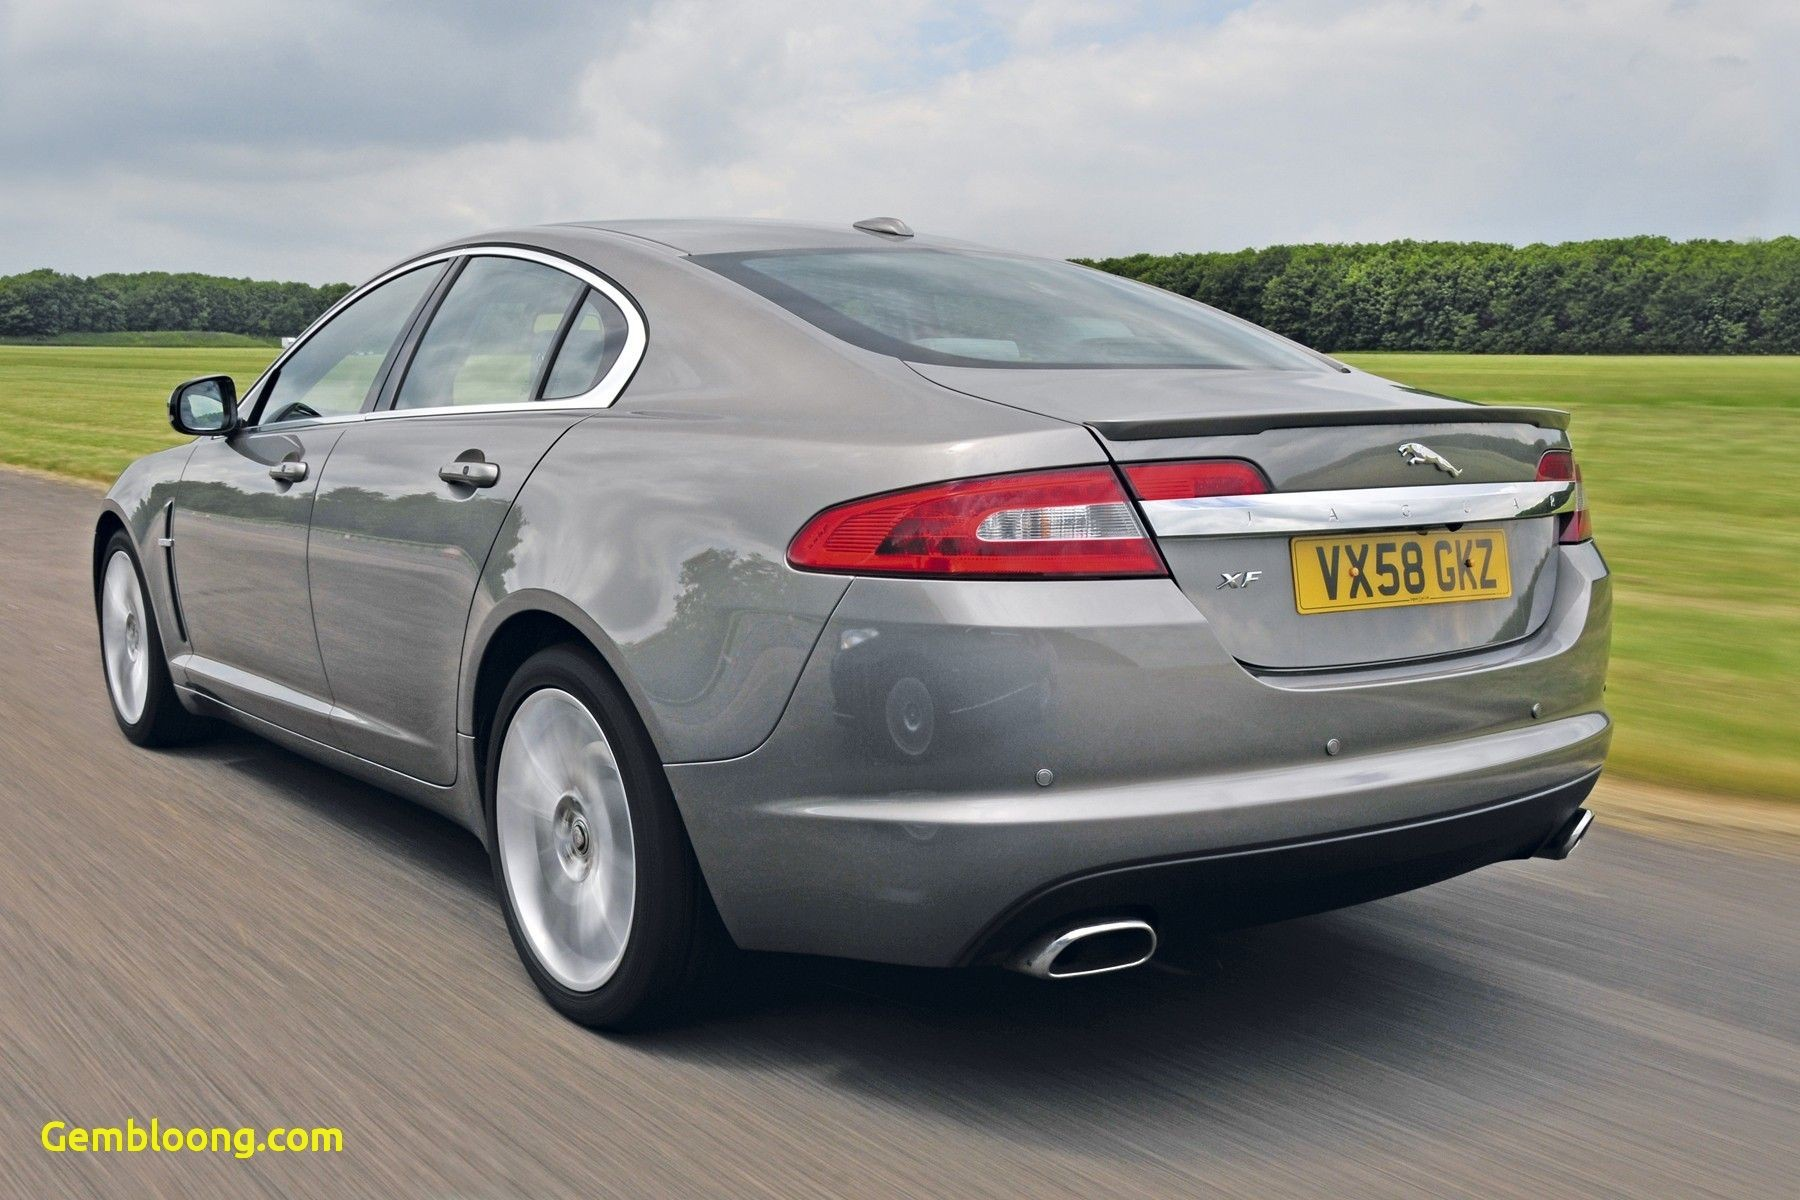 Sell Used Car Lovely Car Places Near Me Elegant Jaguar Xf Luxury 3 0d the Ruling